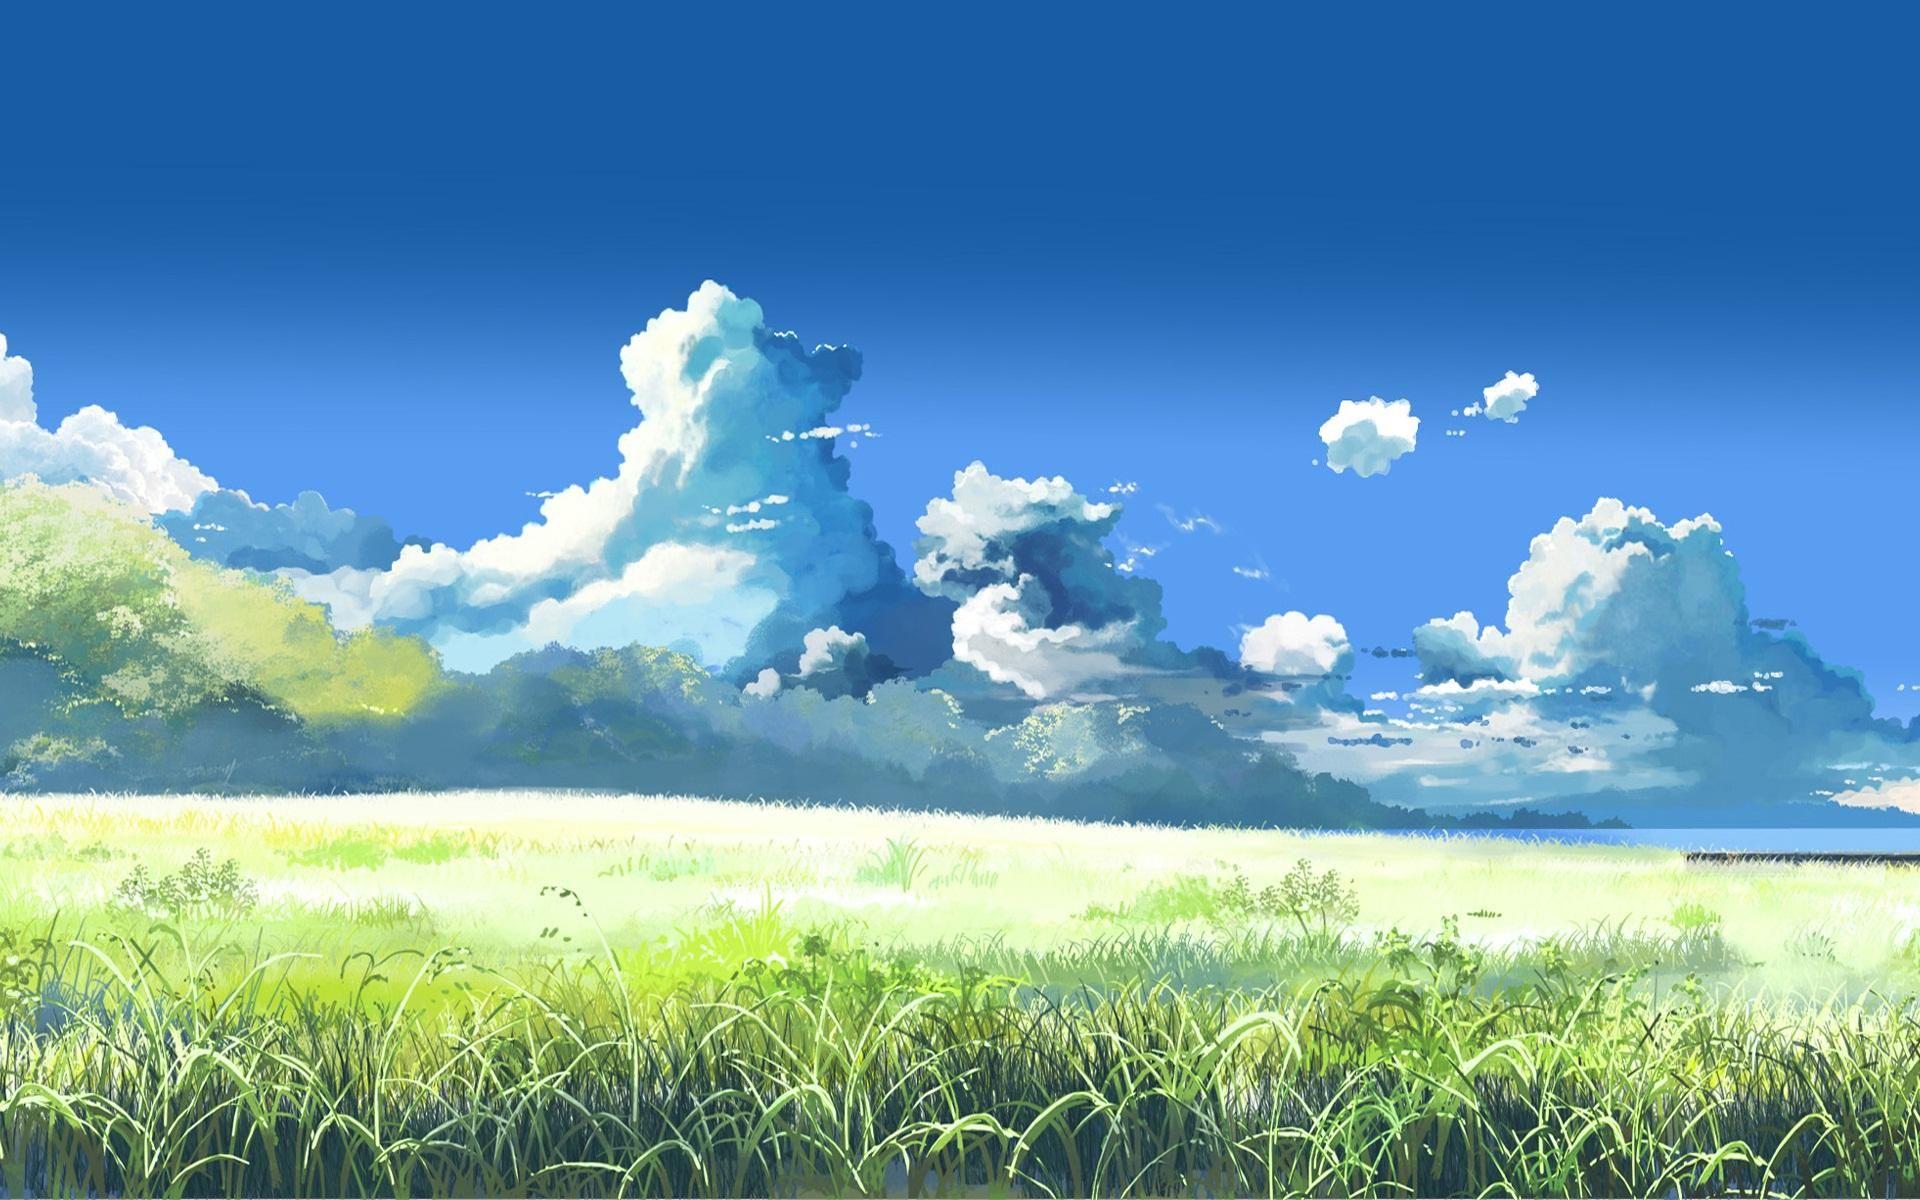 Anime Wallpaper Landscape Hd